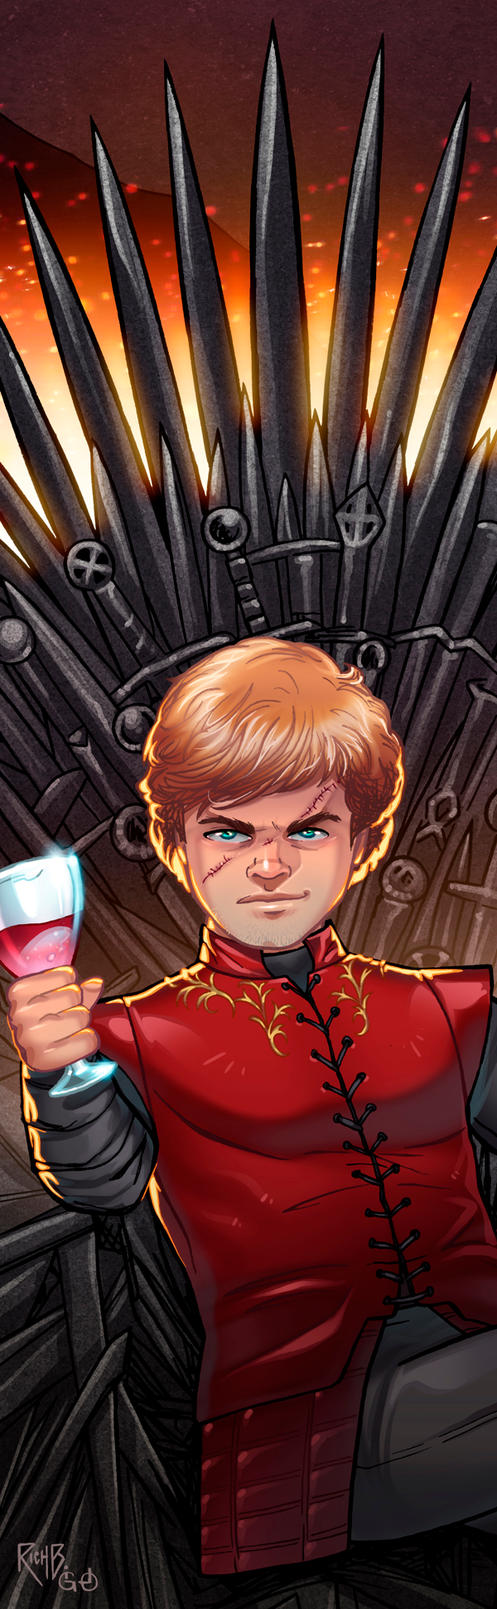 Tyrion Panel Art by RichBernatovech